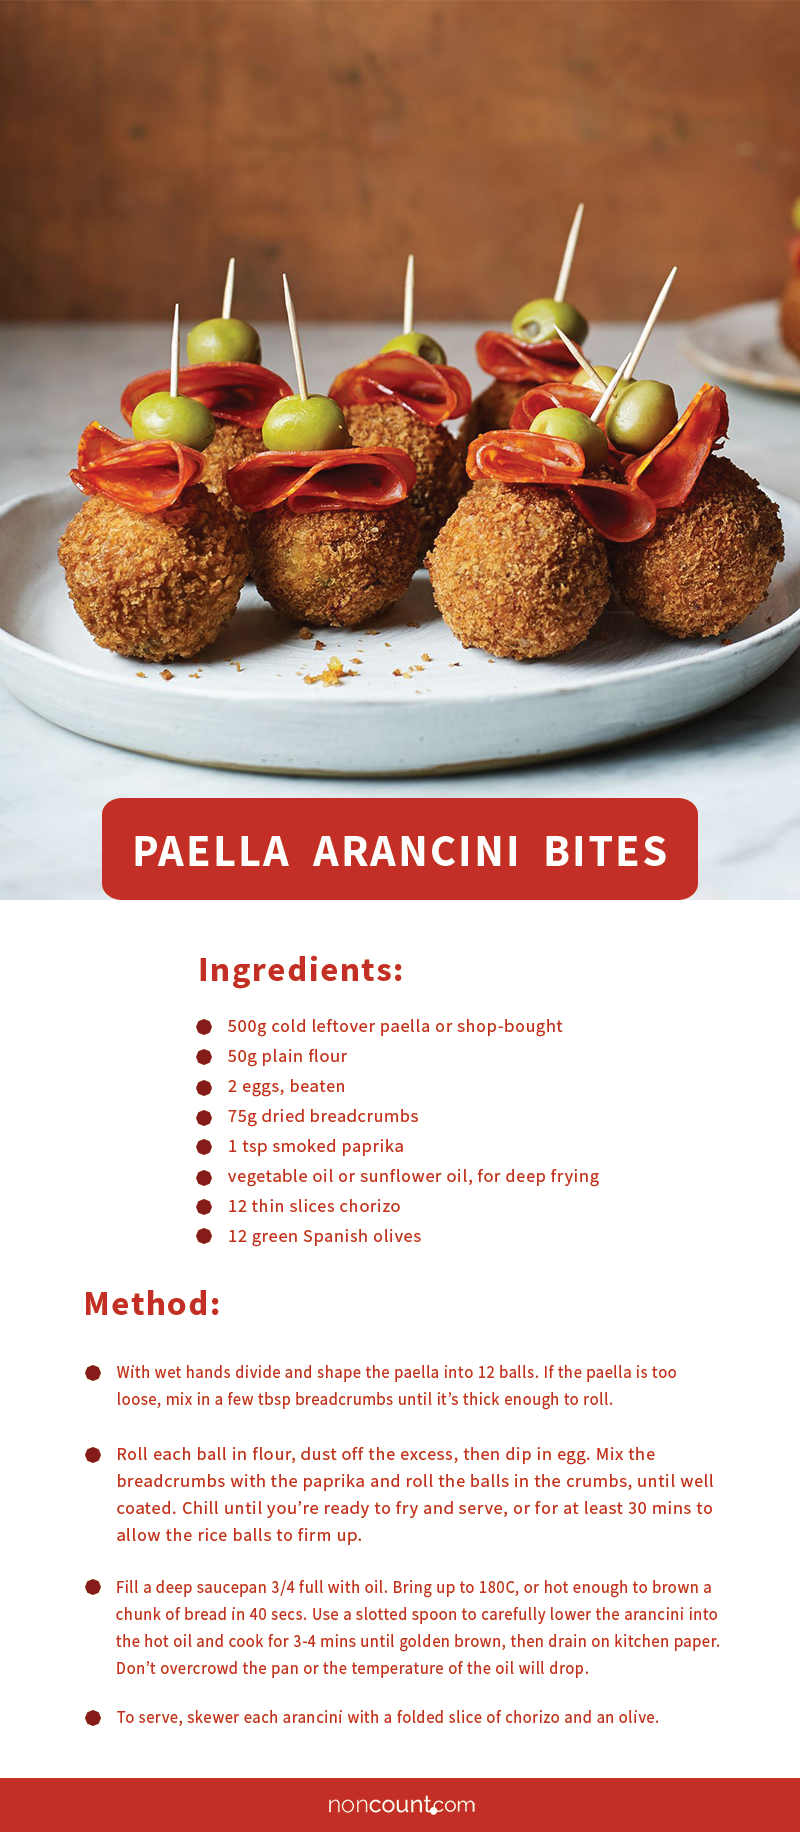 Paella Arancini Bites Party Food Recipe